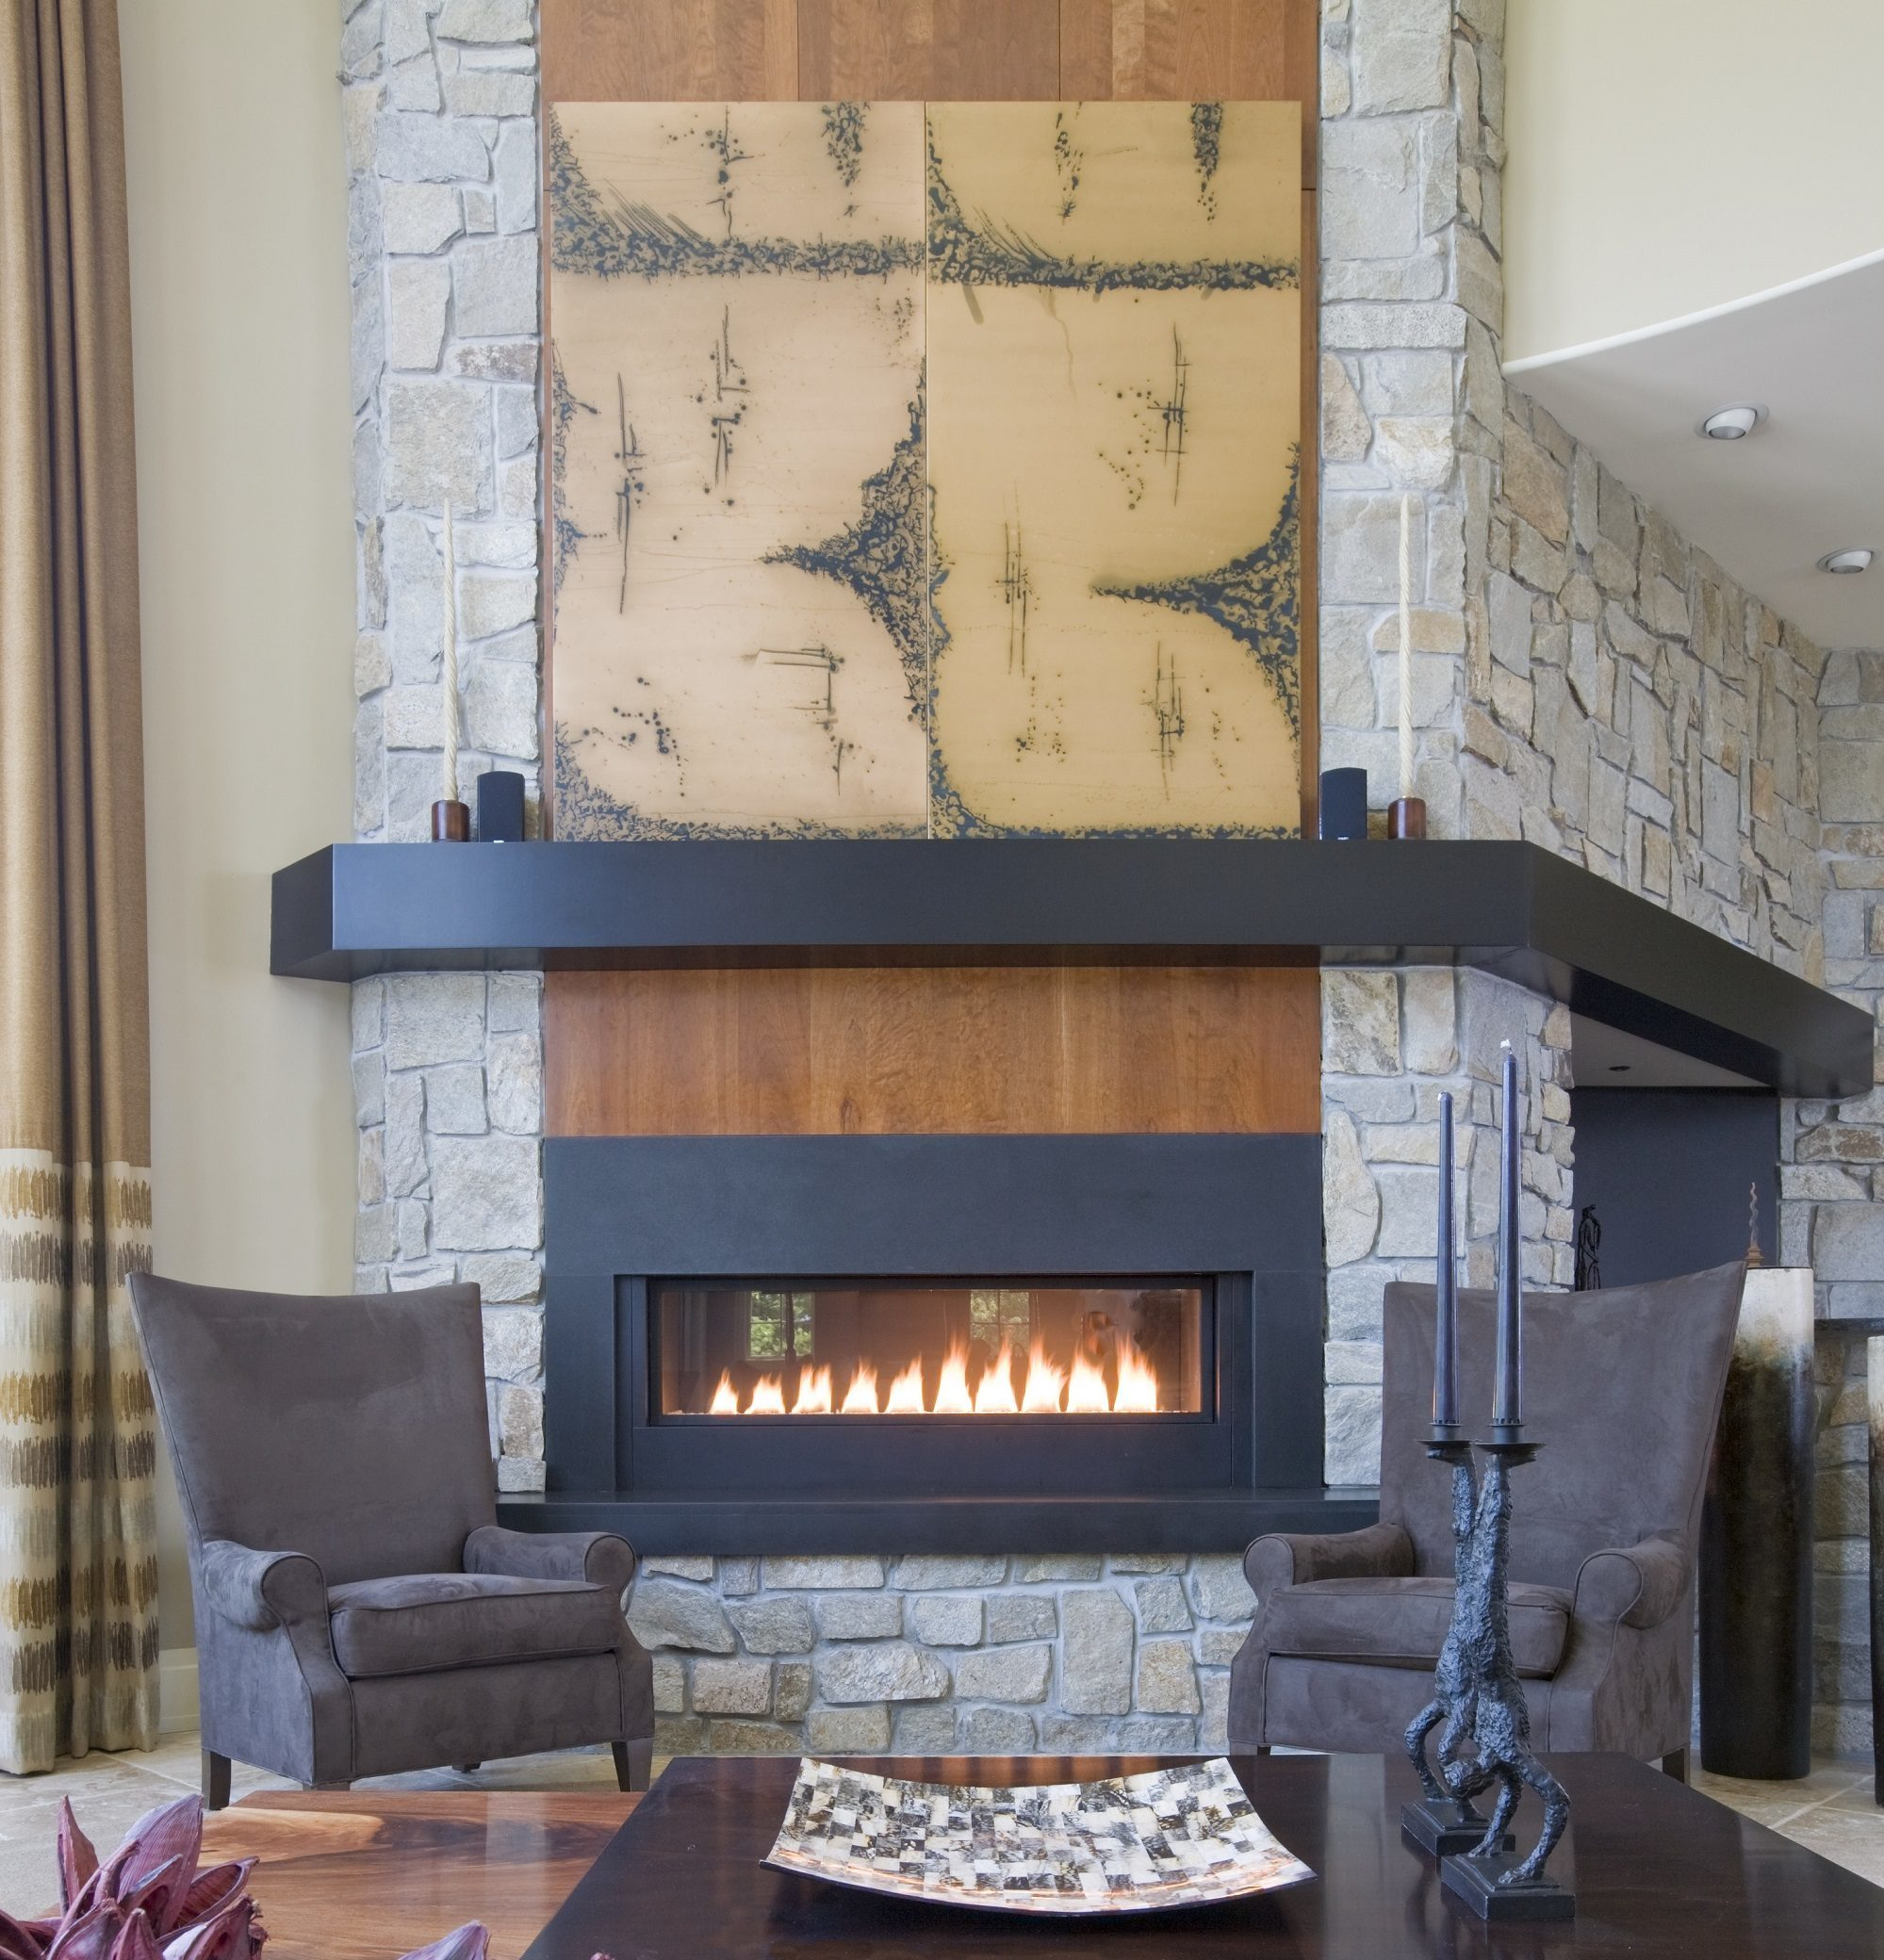 Interior-Concepts-Fireplace-Interior-Design-Maryland